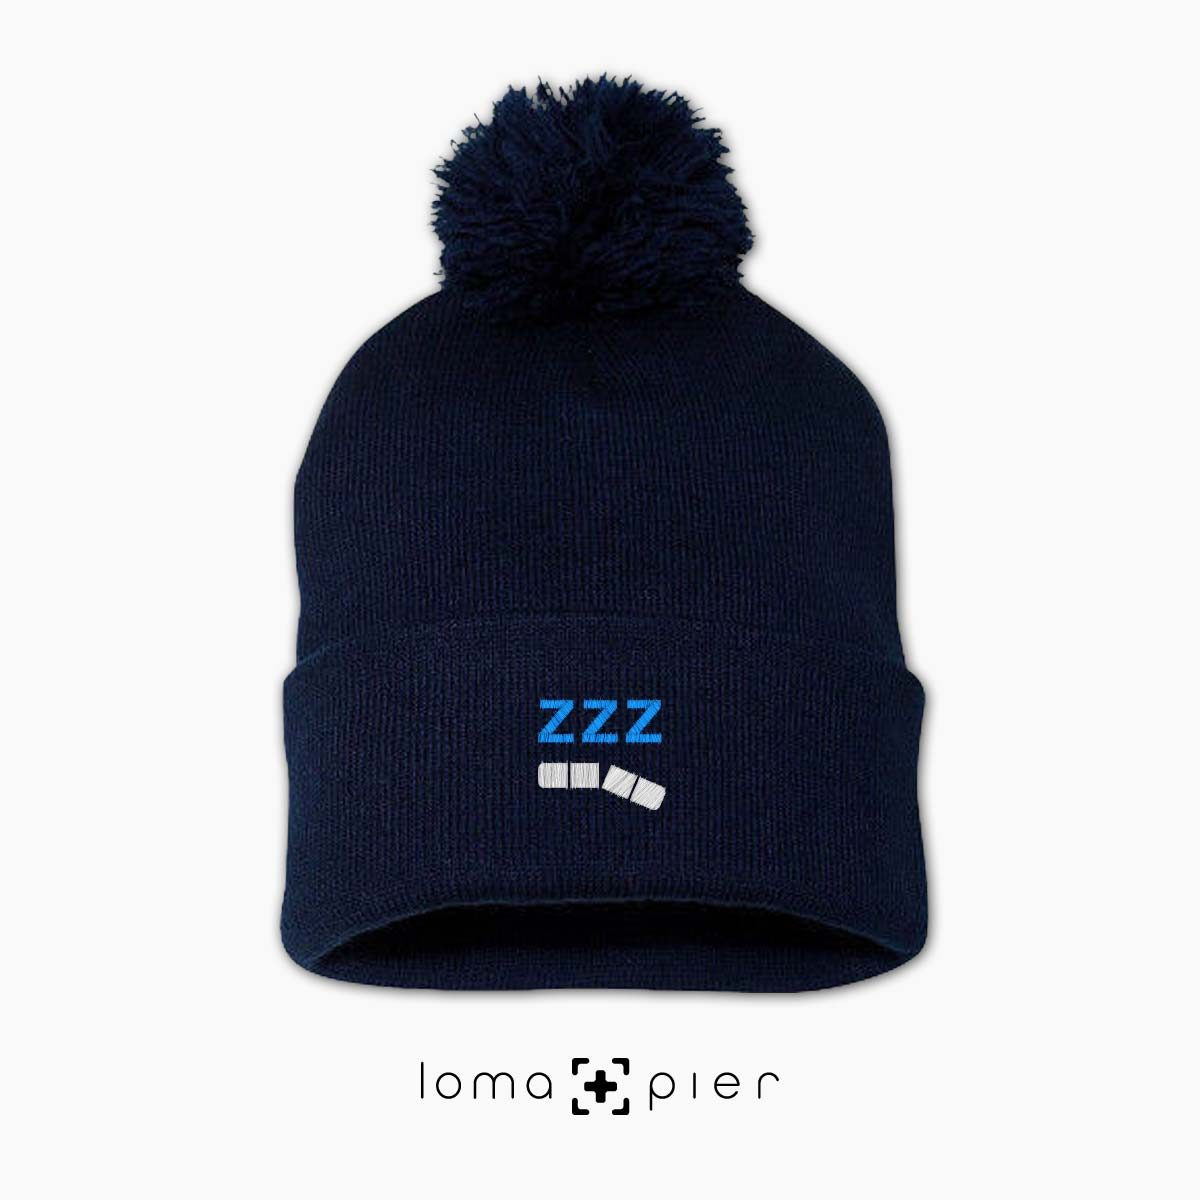 ZZZ-ANNY icon embroidered on a navy blue pom pom beanie with white and sky blue thread by loma+pier hat store